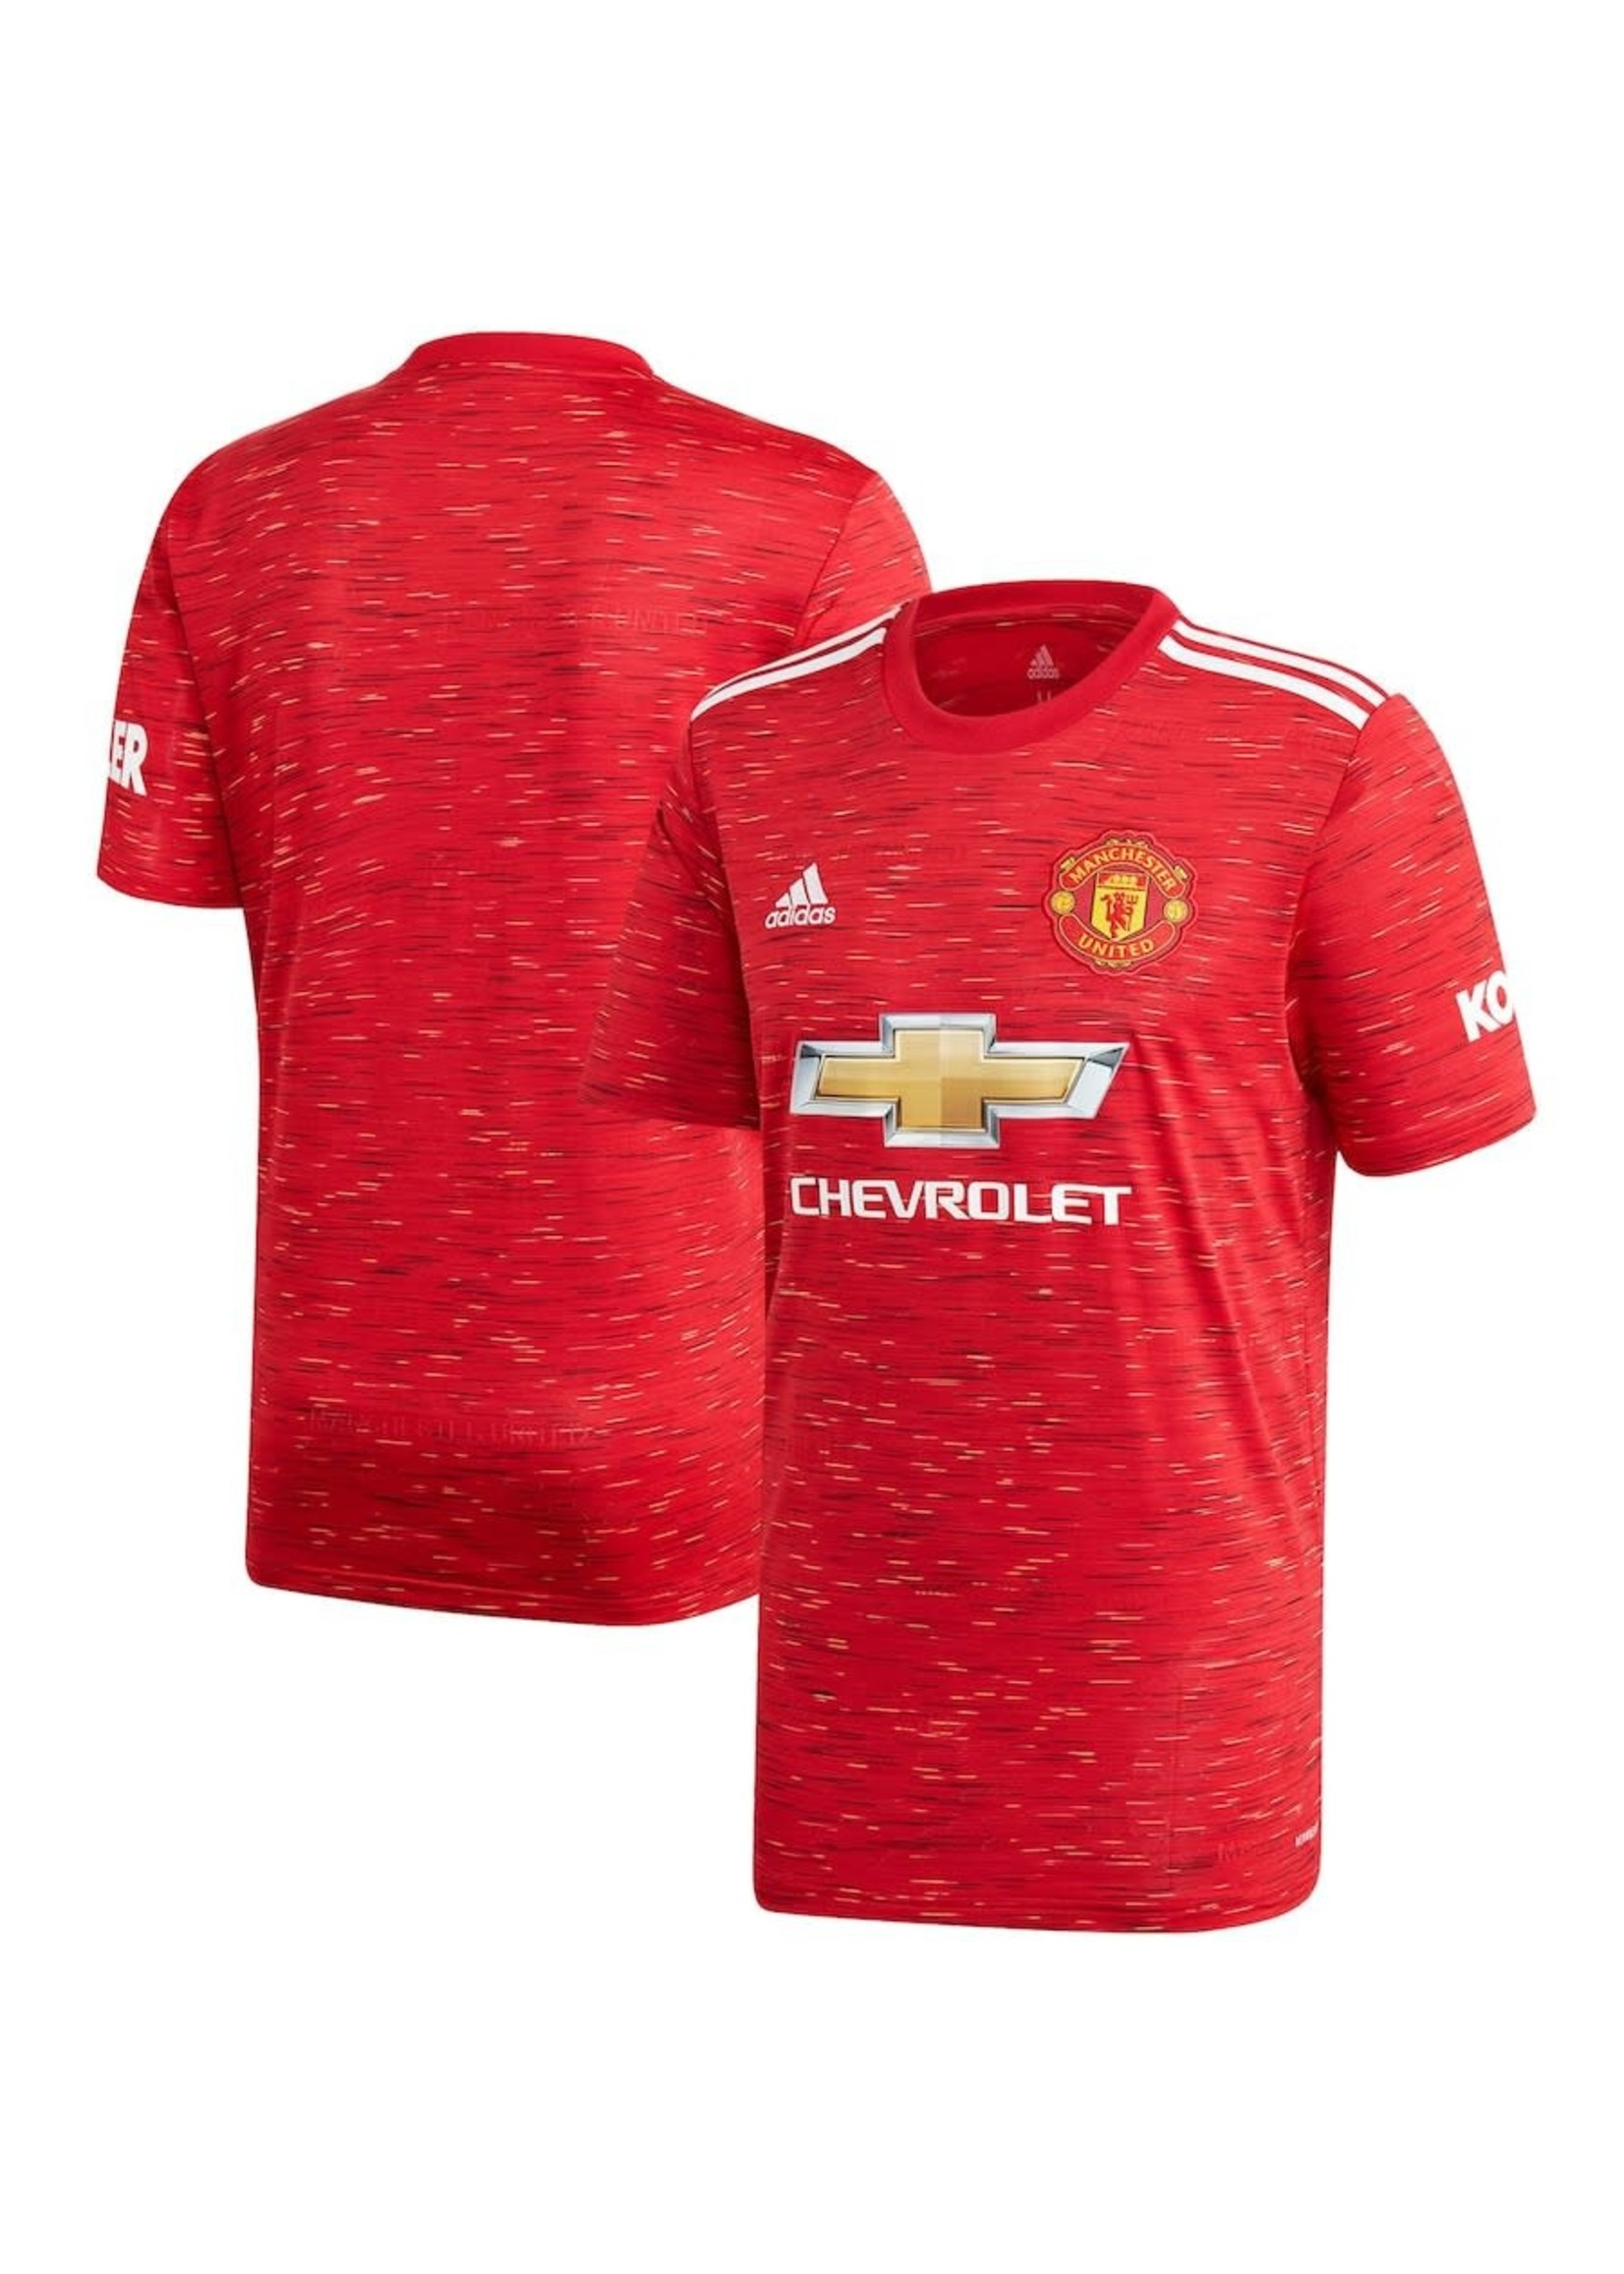 Adidas MANCHESTER UNITED 2020/21 HOME JERSEY - YOUTH